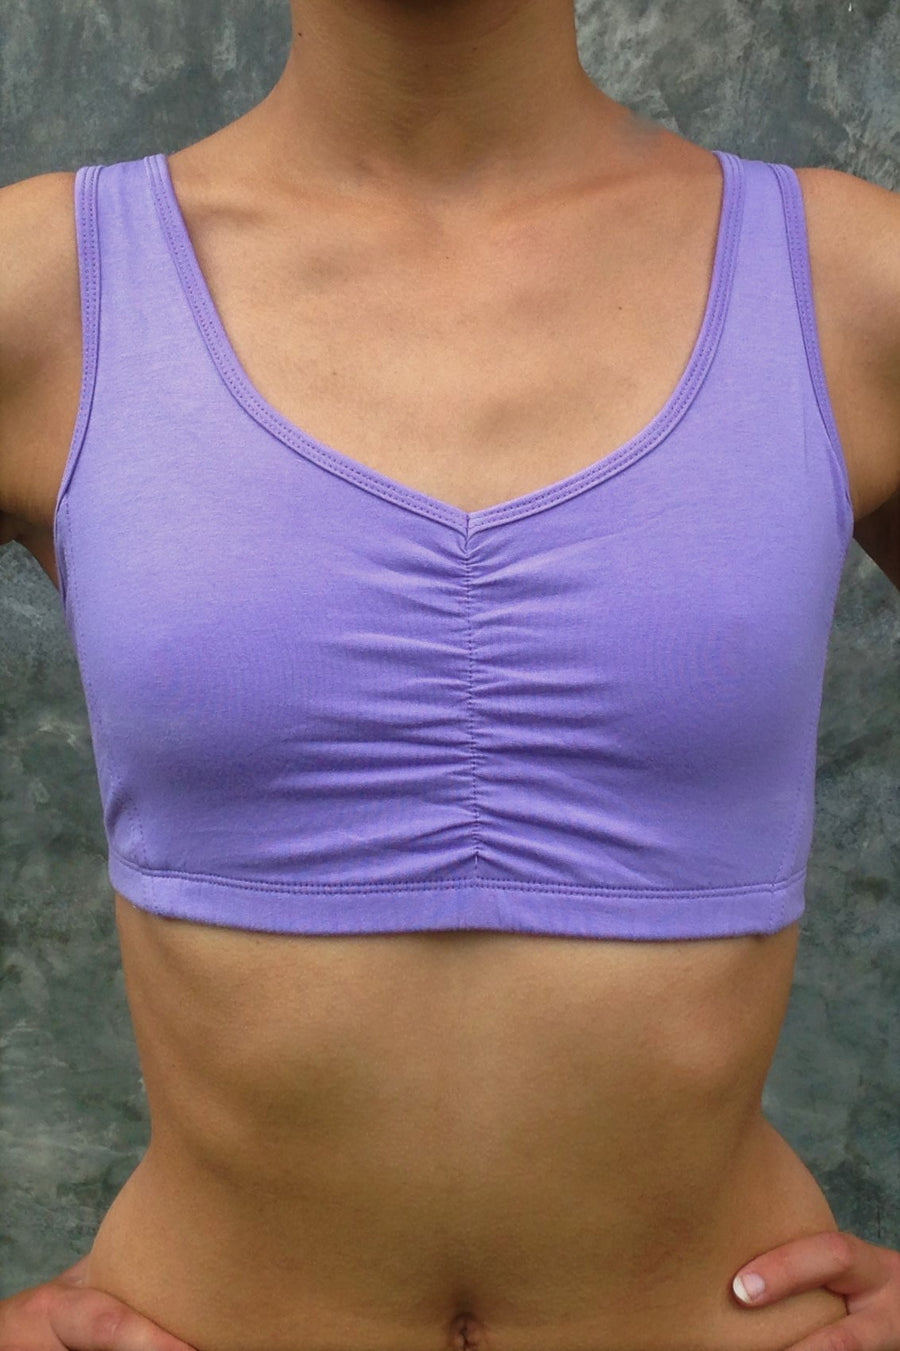 Front view of Lavender Sports Bra that has wide straps and ruching between breasts. Has sunburst design straps on back. Comes in sizes XS-XL but especially great for large chested active women while still being soft, cute, comfortable and functional.